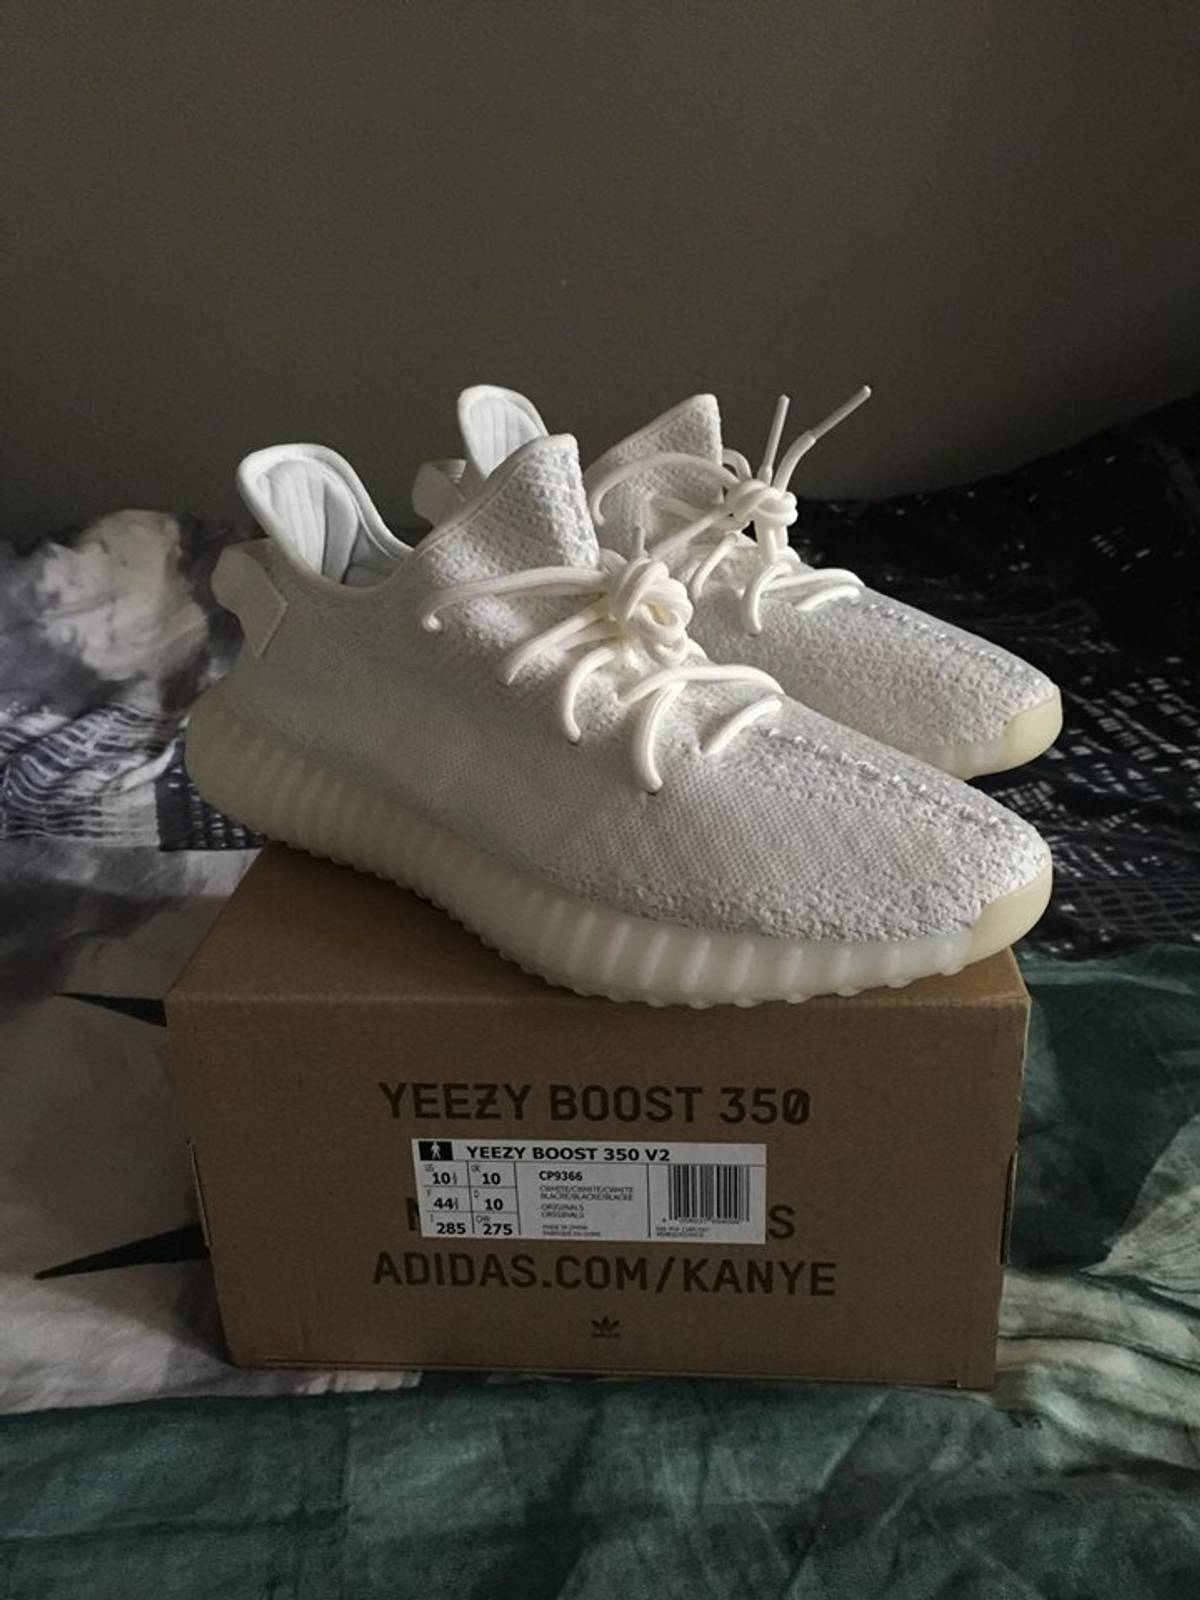 Yeezy Boost 350 V2 Triple White Outfits!! #GONZOGOTGAME